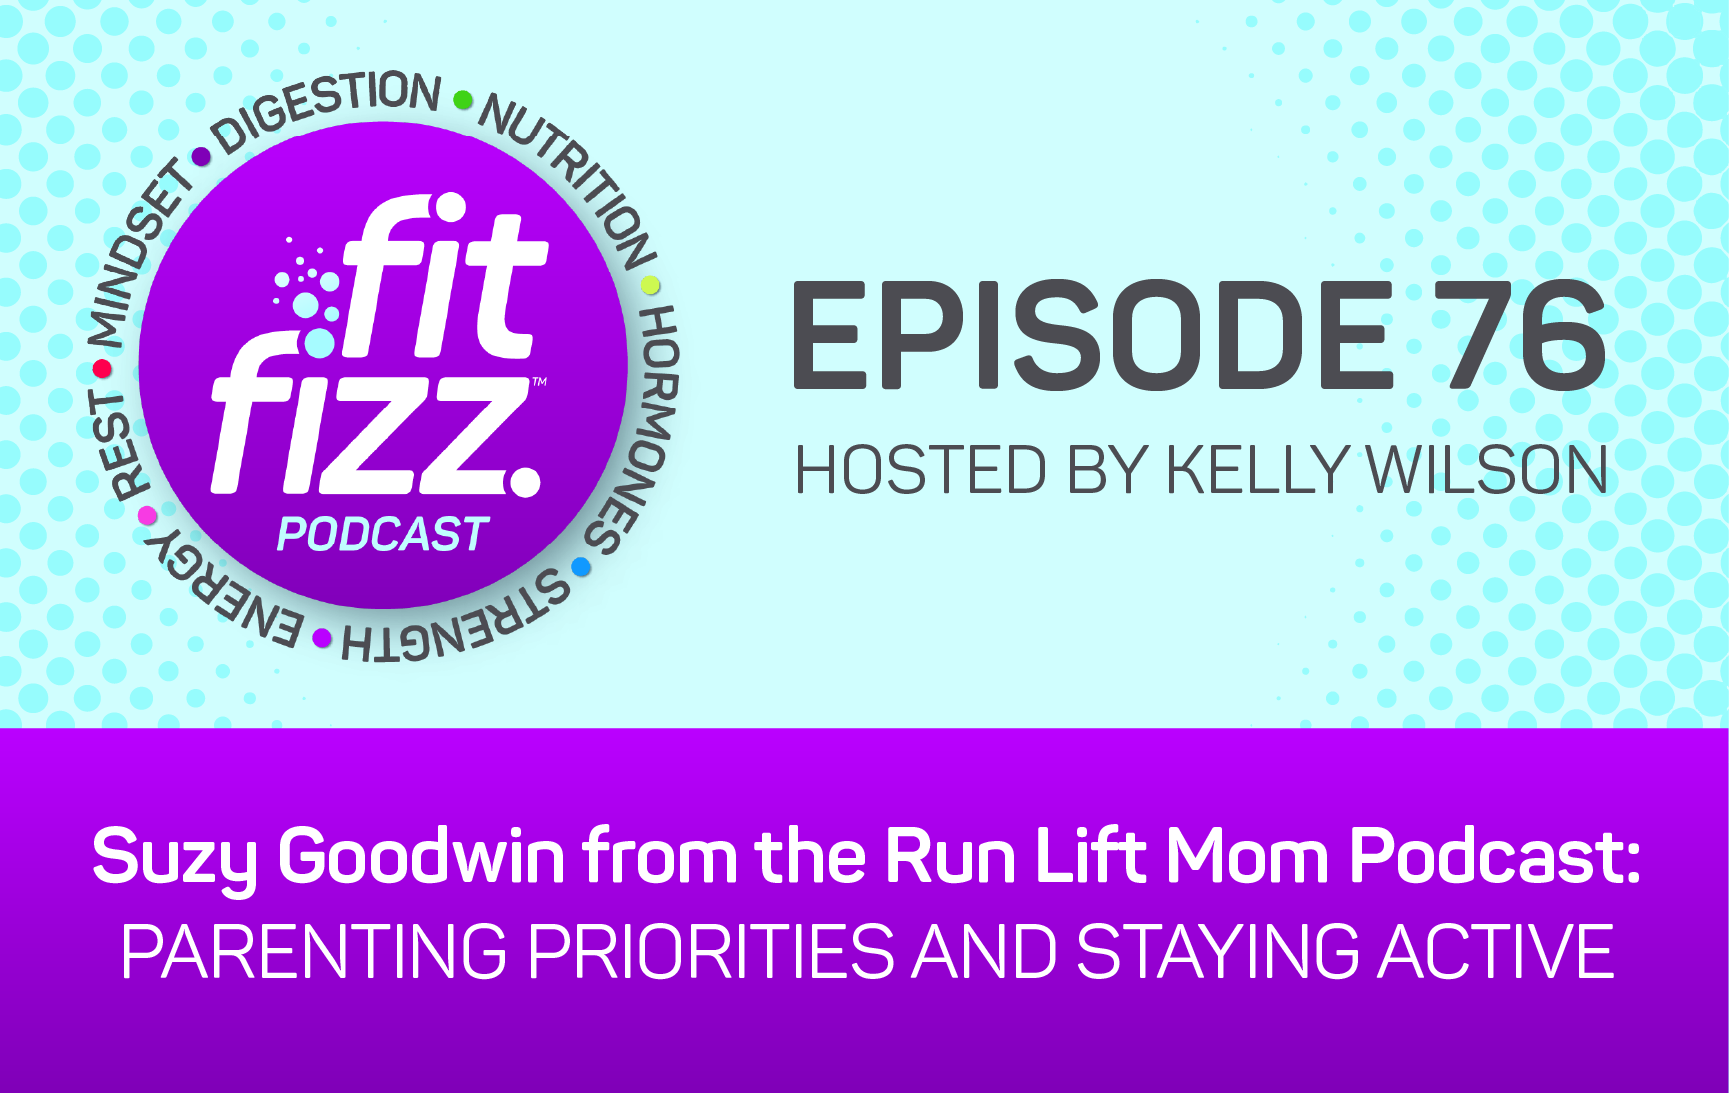 Ep. 76: Suzy Goodwin from the Run Lift Mom Podcast: Parenting Priorities and Staying Active